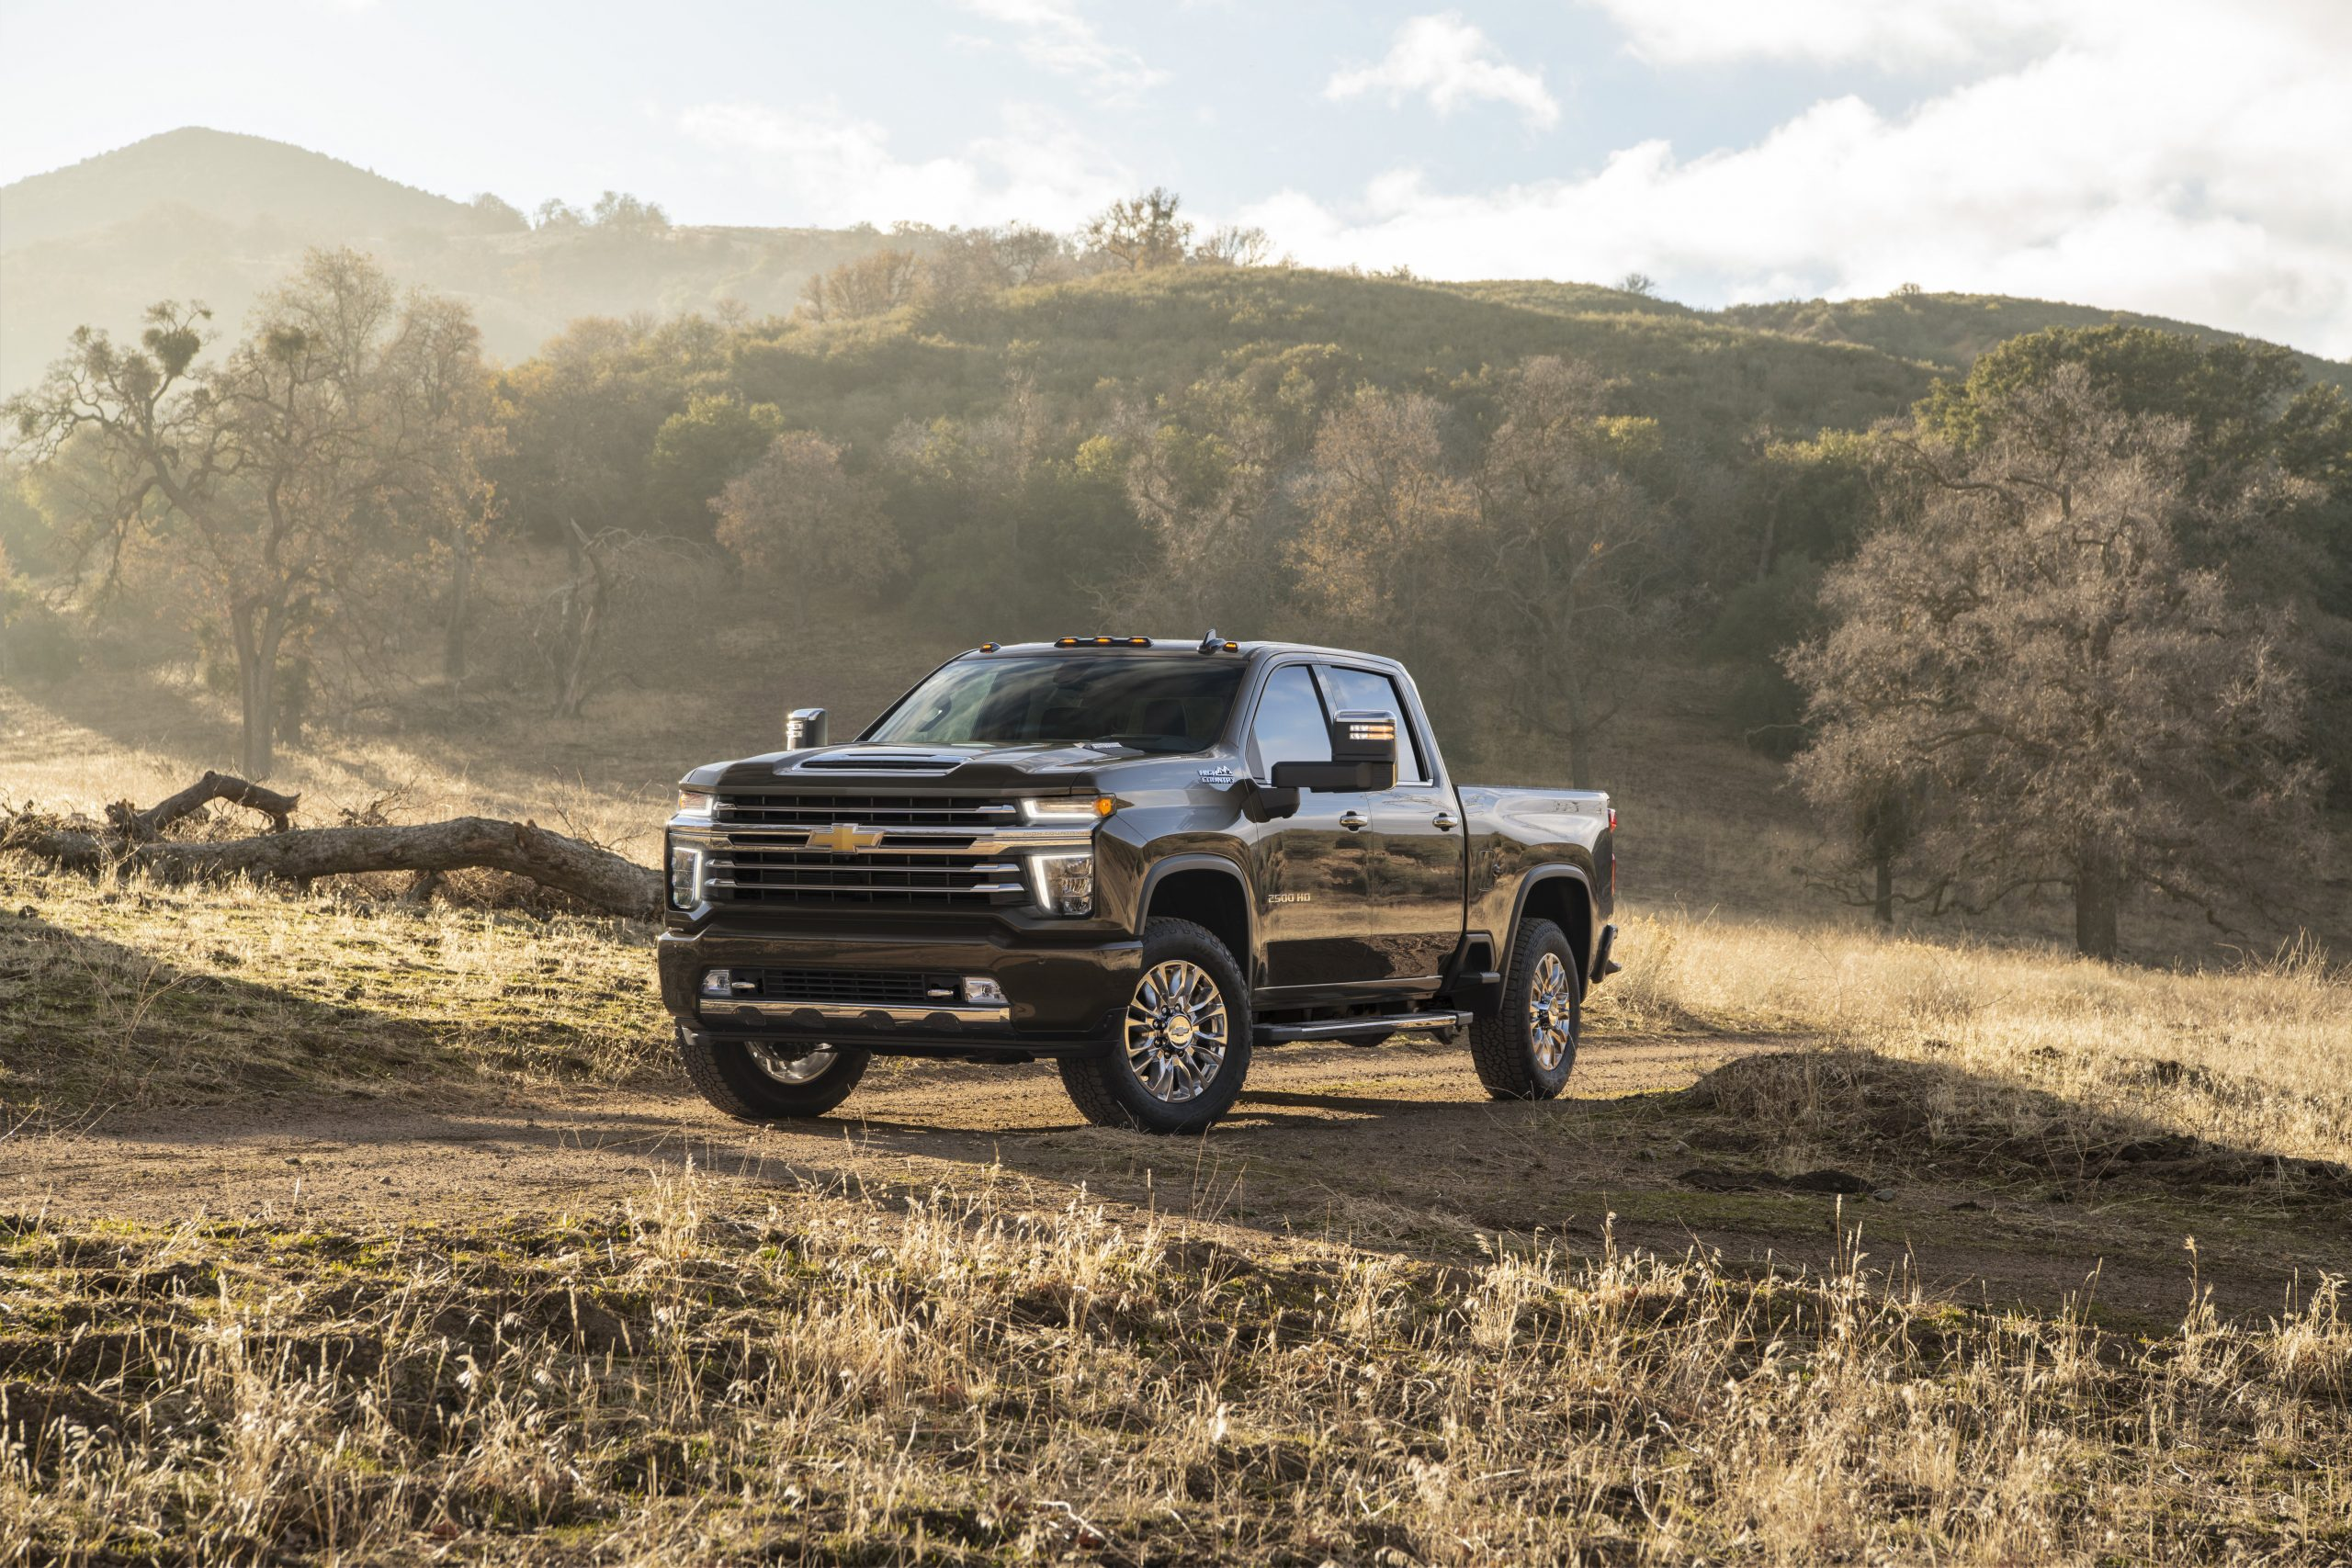 Chevrolet Silverado 2500Hd - 2020 2021 Chevrolet Silverado 2500Hd Manual, Oil Capacity, Pictures